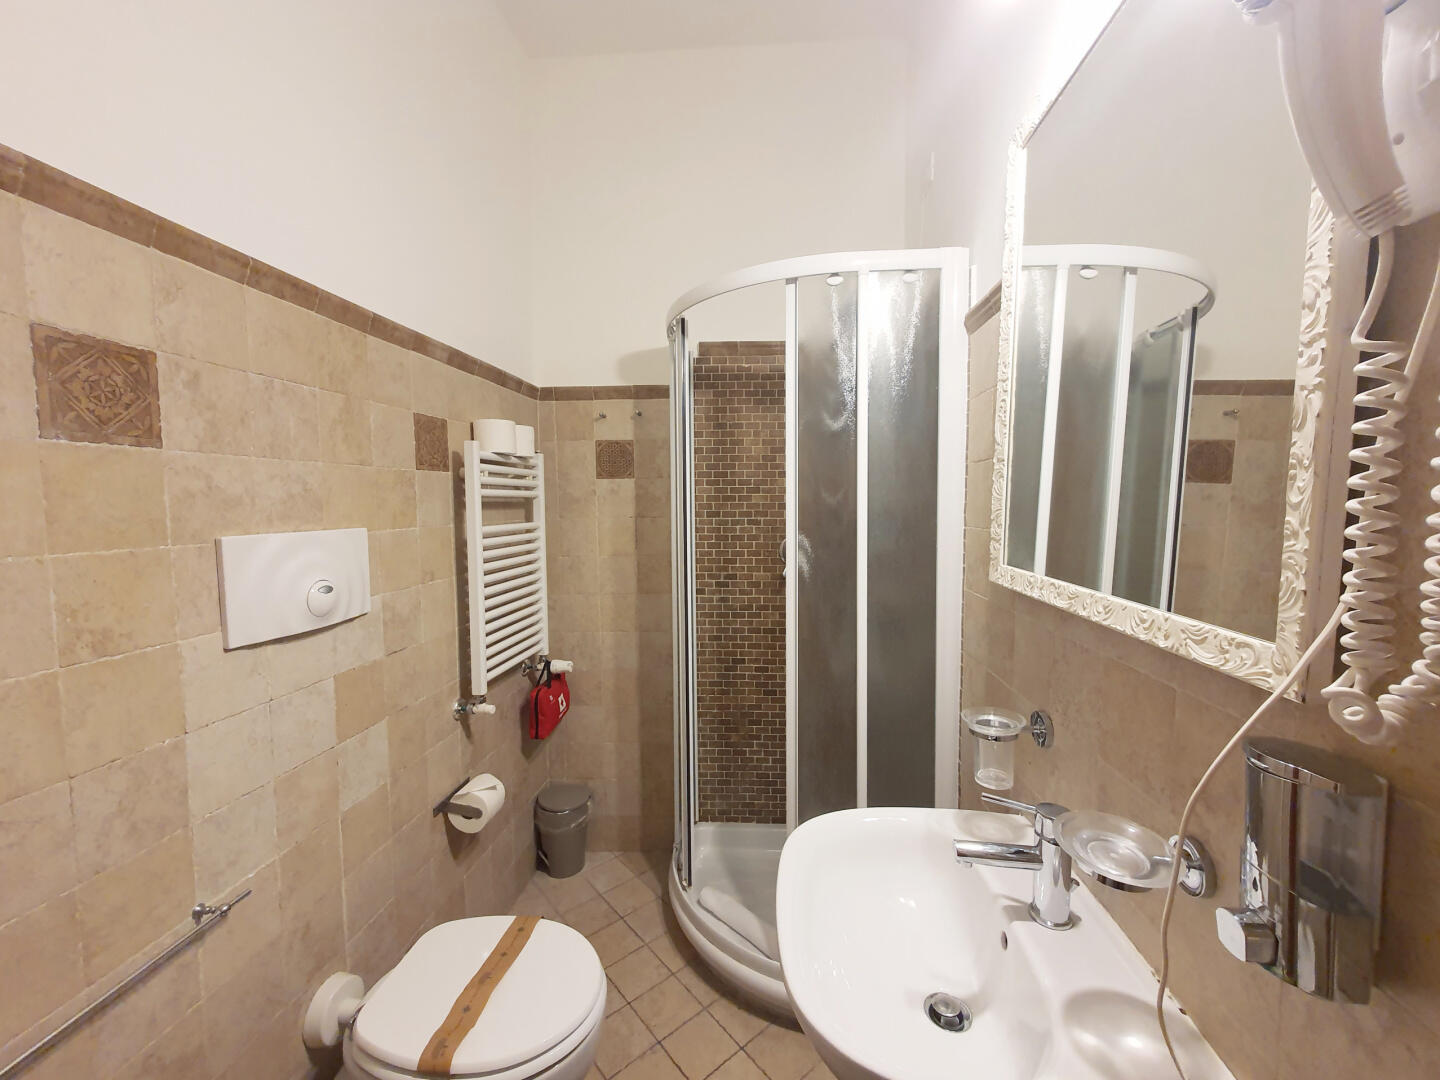 Trevi Holiday | Dream Stay for 2 in Heart of Rome! Slide-26